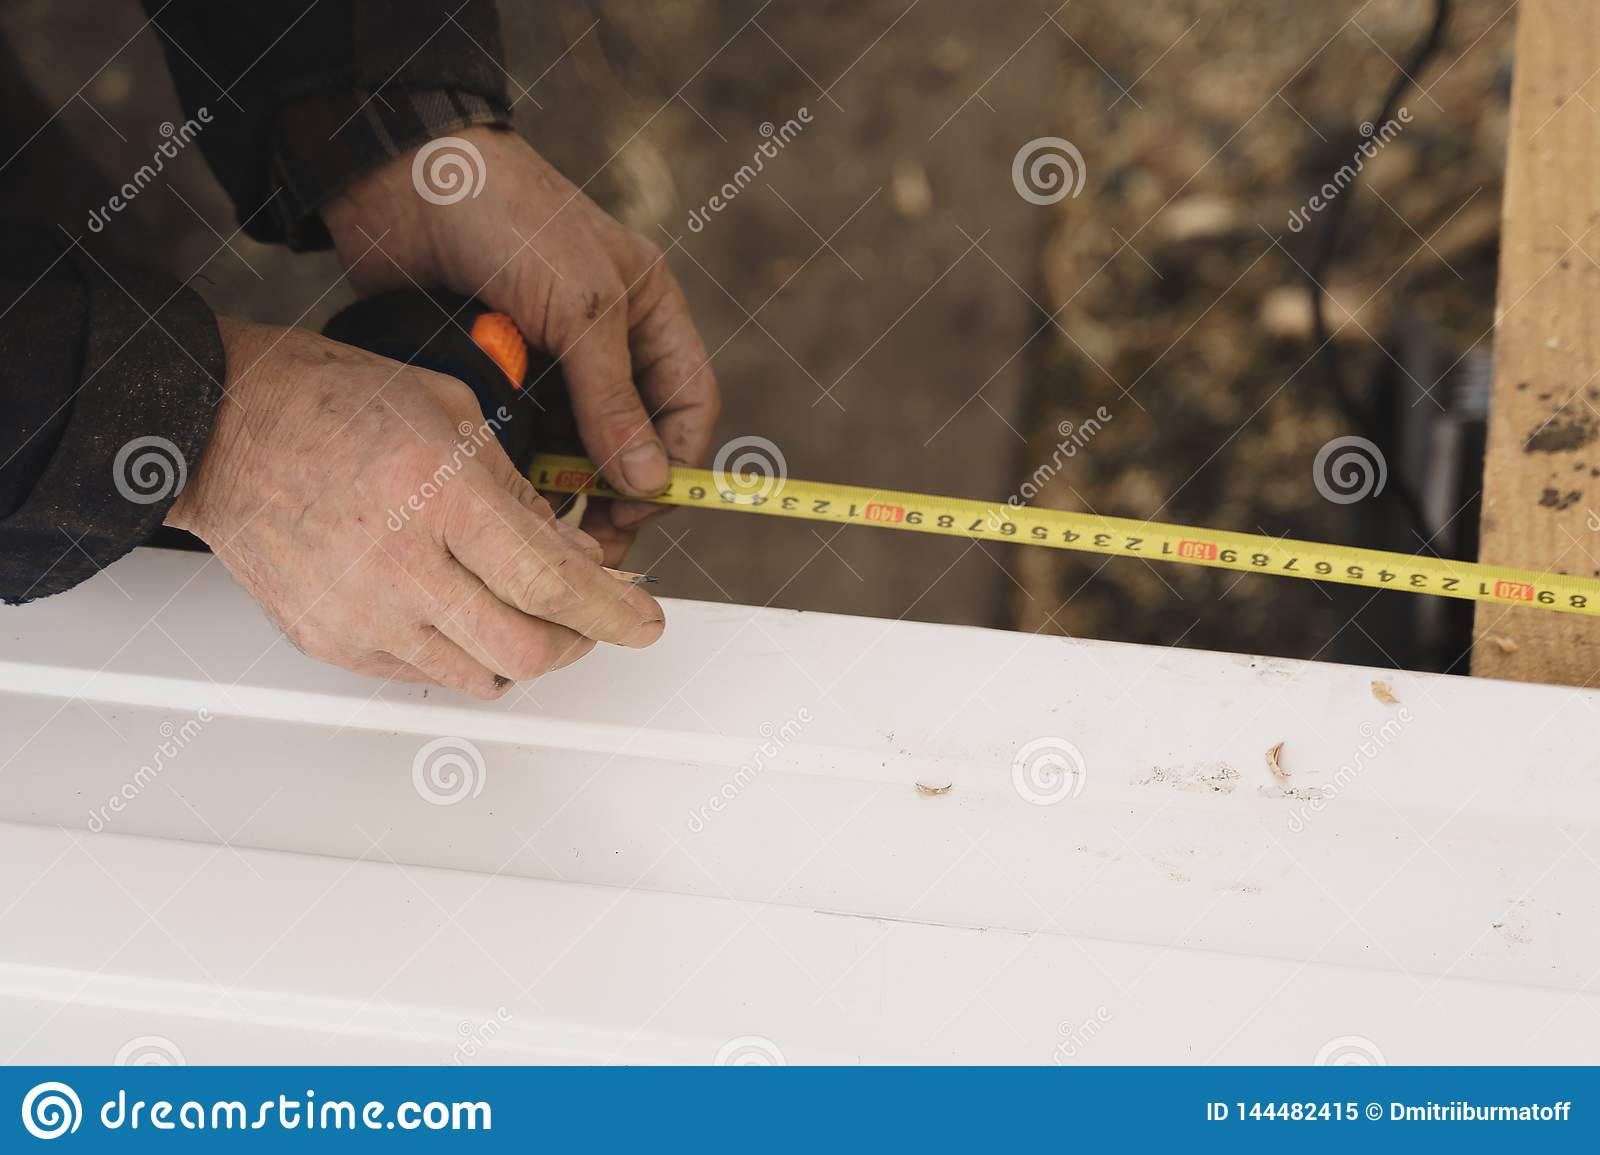 Builder in gloves measures the length of a metal profile with a tape measure.